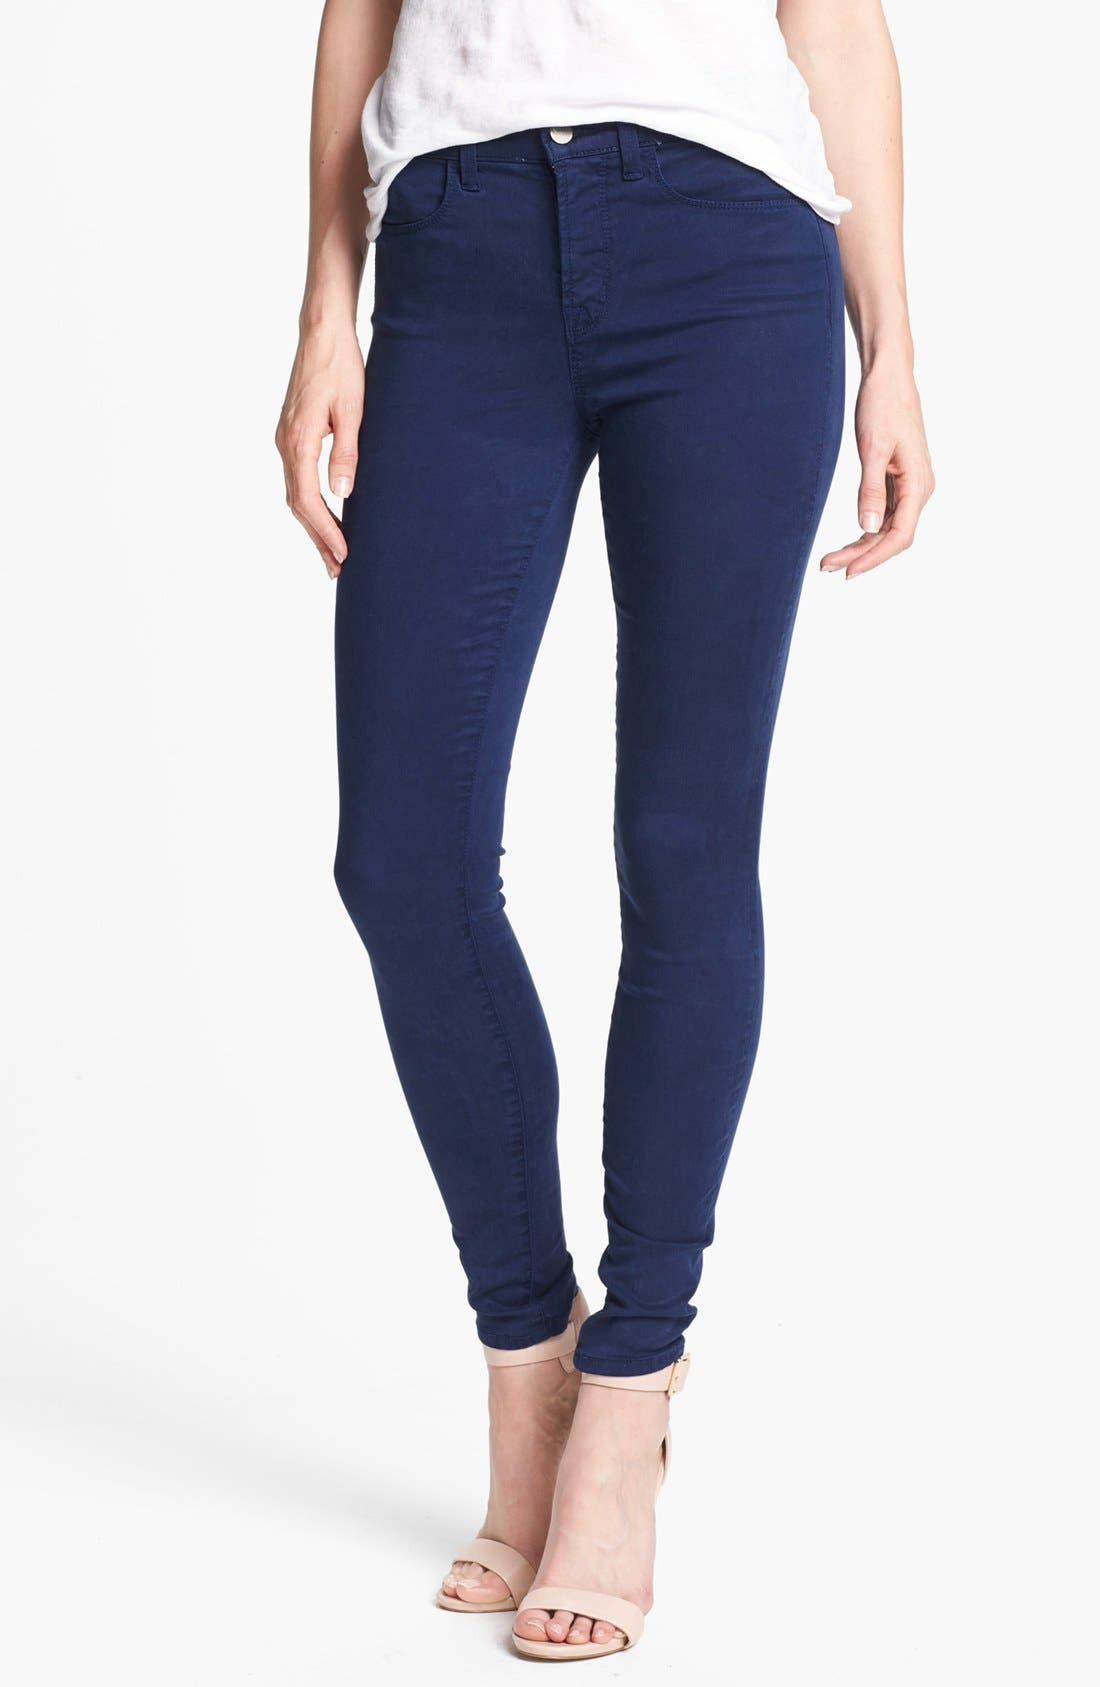 Alternate Image 1 Selected - J Brand 'Maria 2311' High Rise Skinny Jeans (Blueberry)